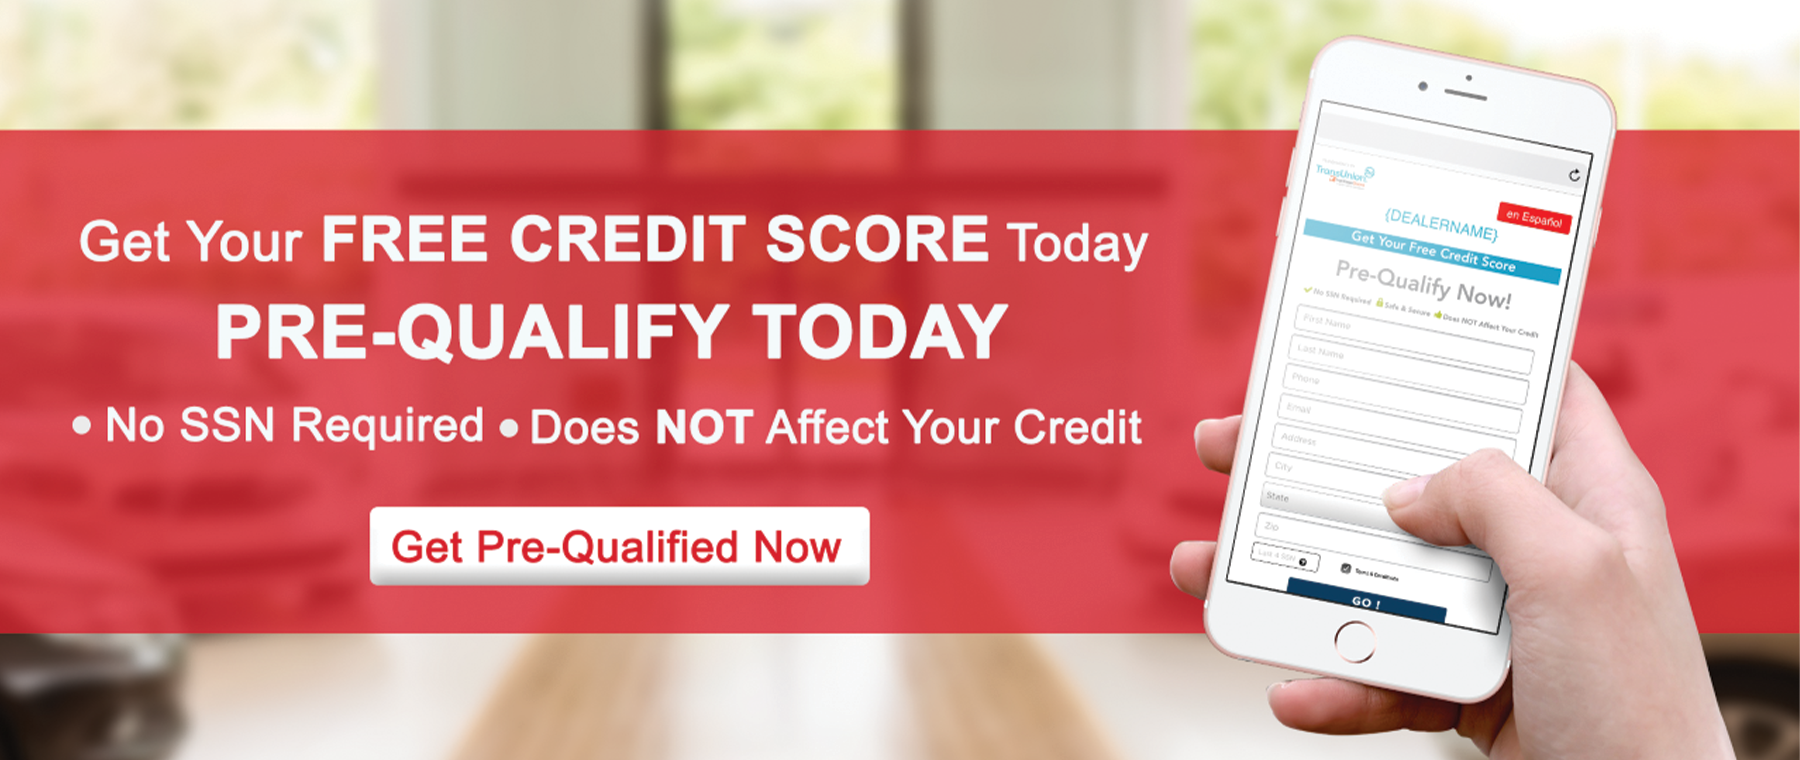 Get Your FREE CREDIT Score Today & Pre-Qualify Today! No SSN Required - Does NOT Affect Your Credit